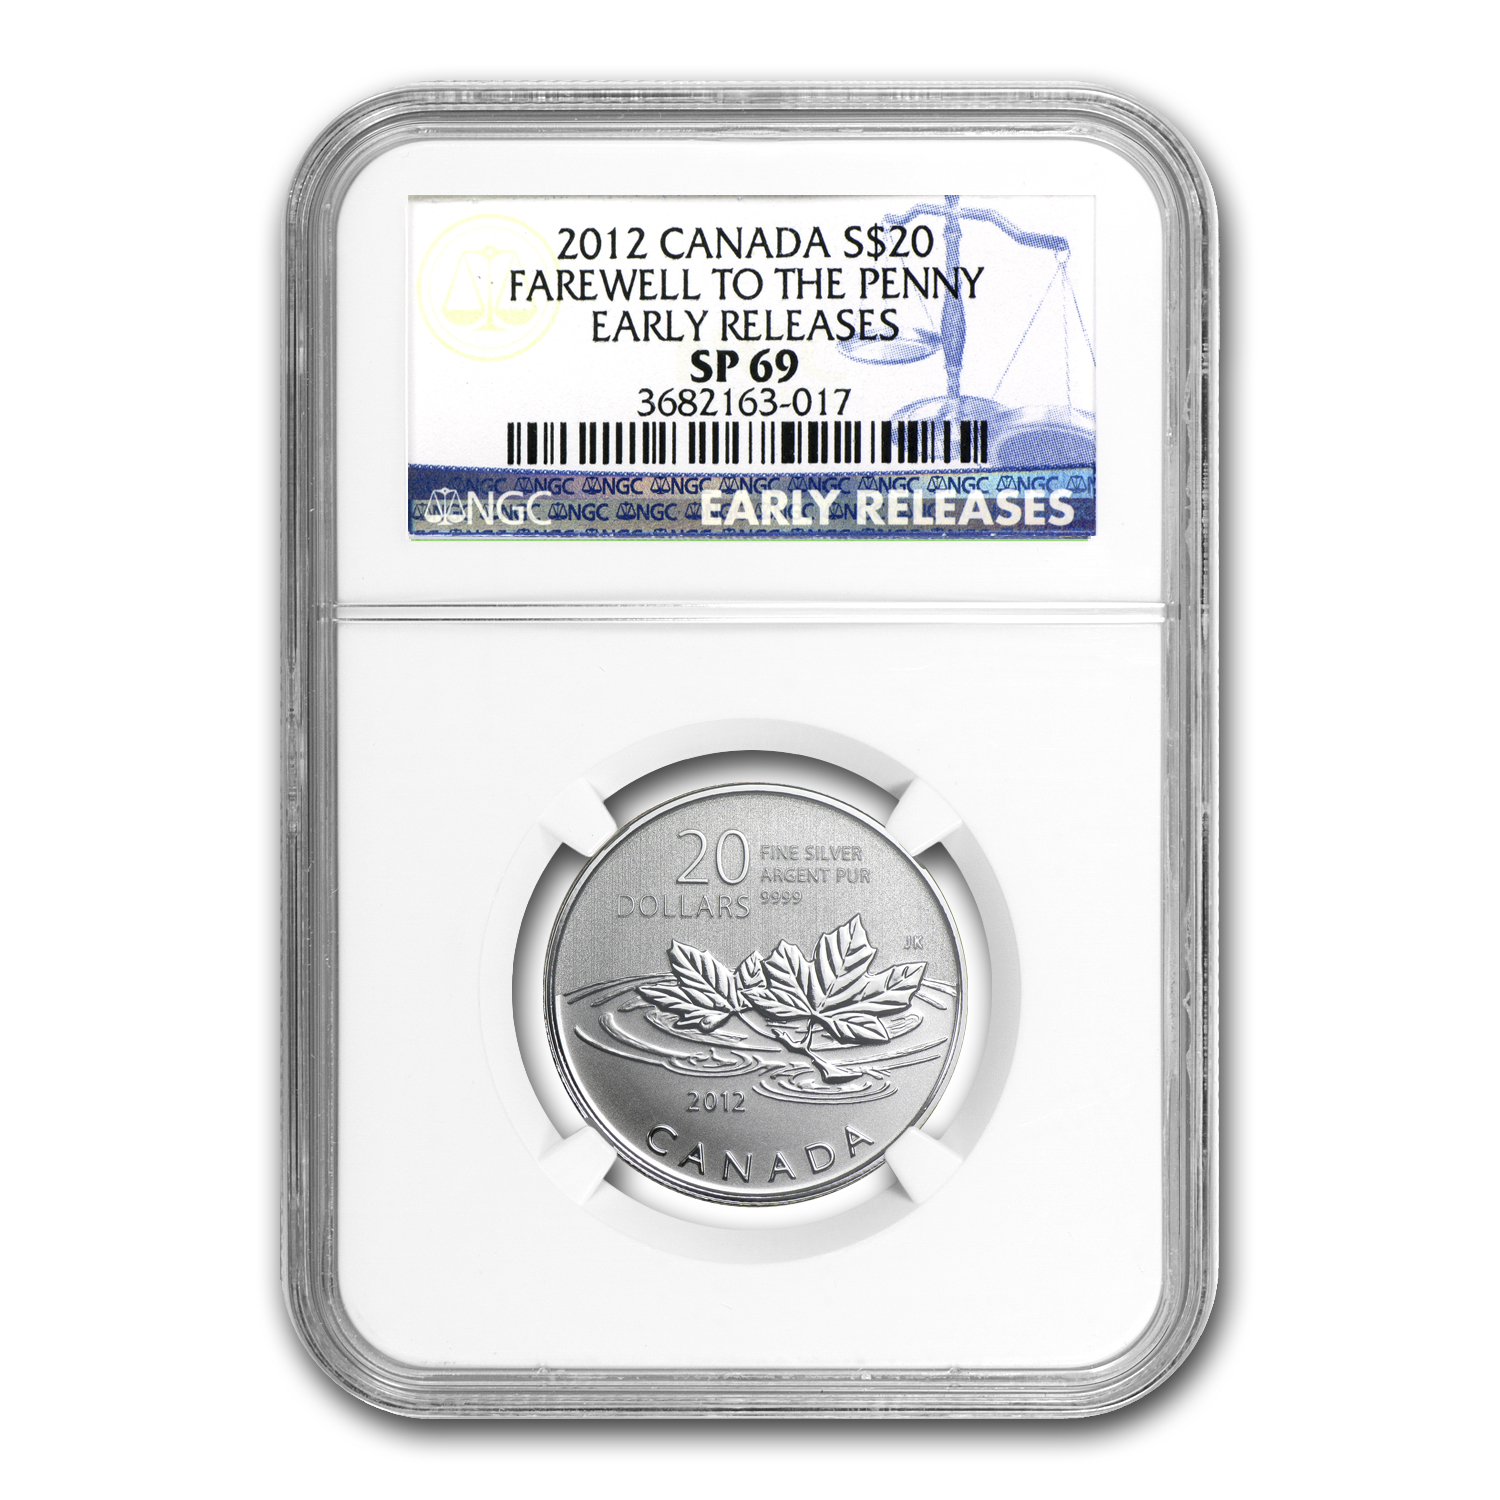 2012 1/4 oz Silver Canadian $20 Farewell to Penny SP-69 NGC ER